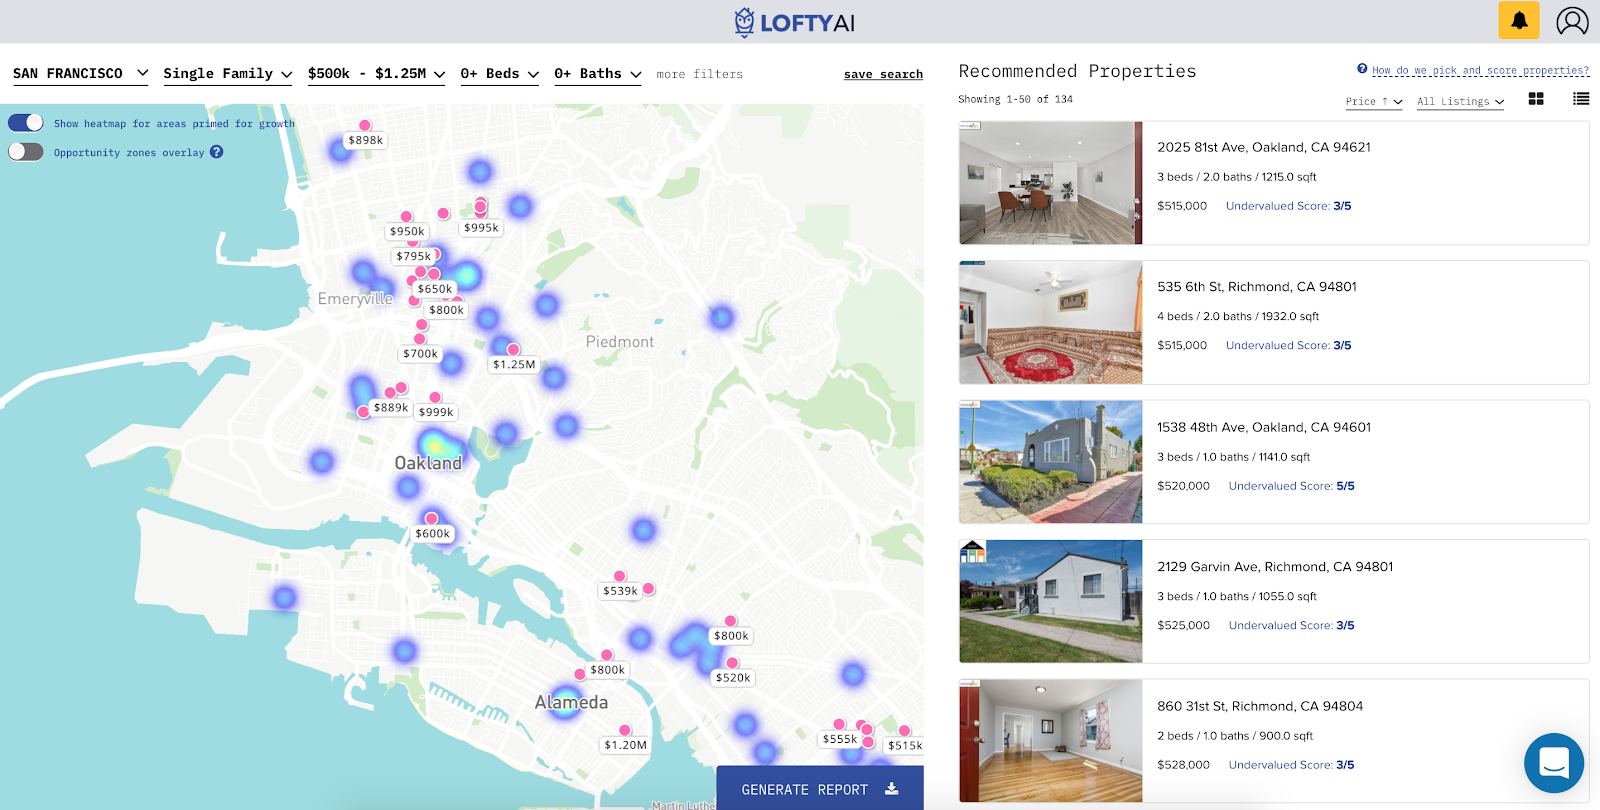 Lofty AI platform showing properties in Oakland, California